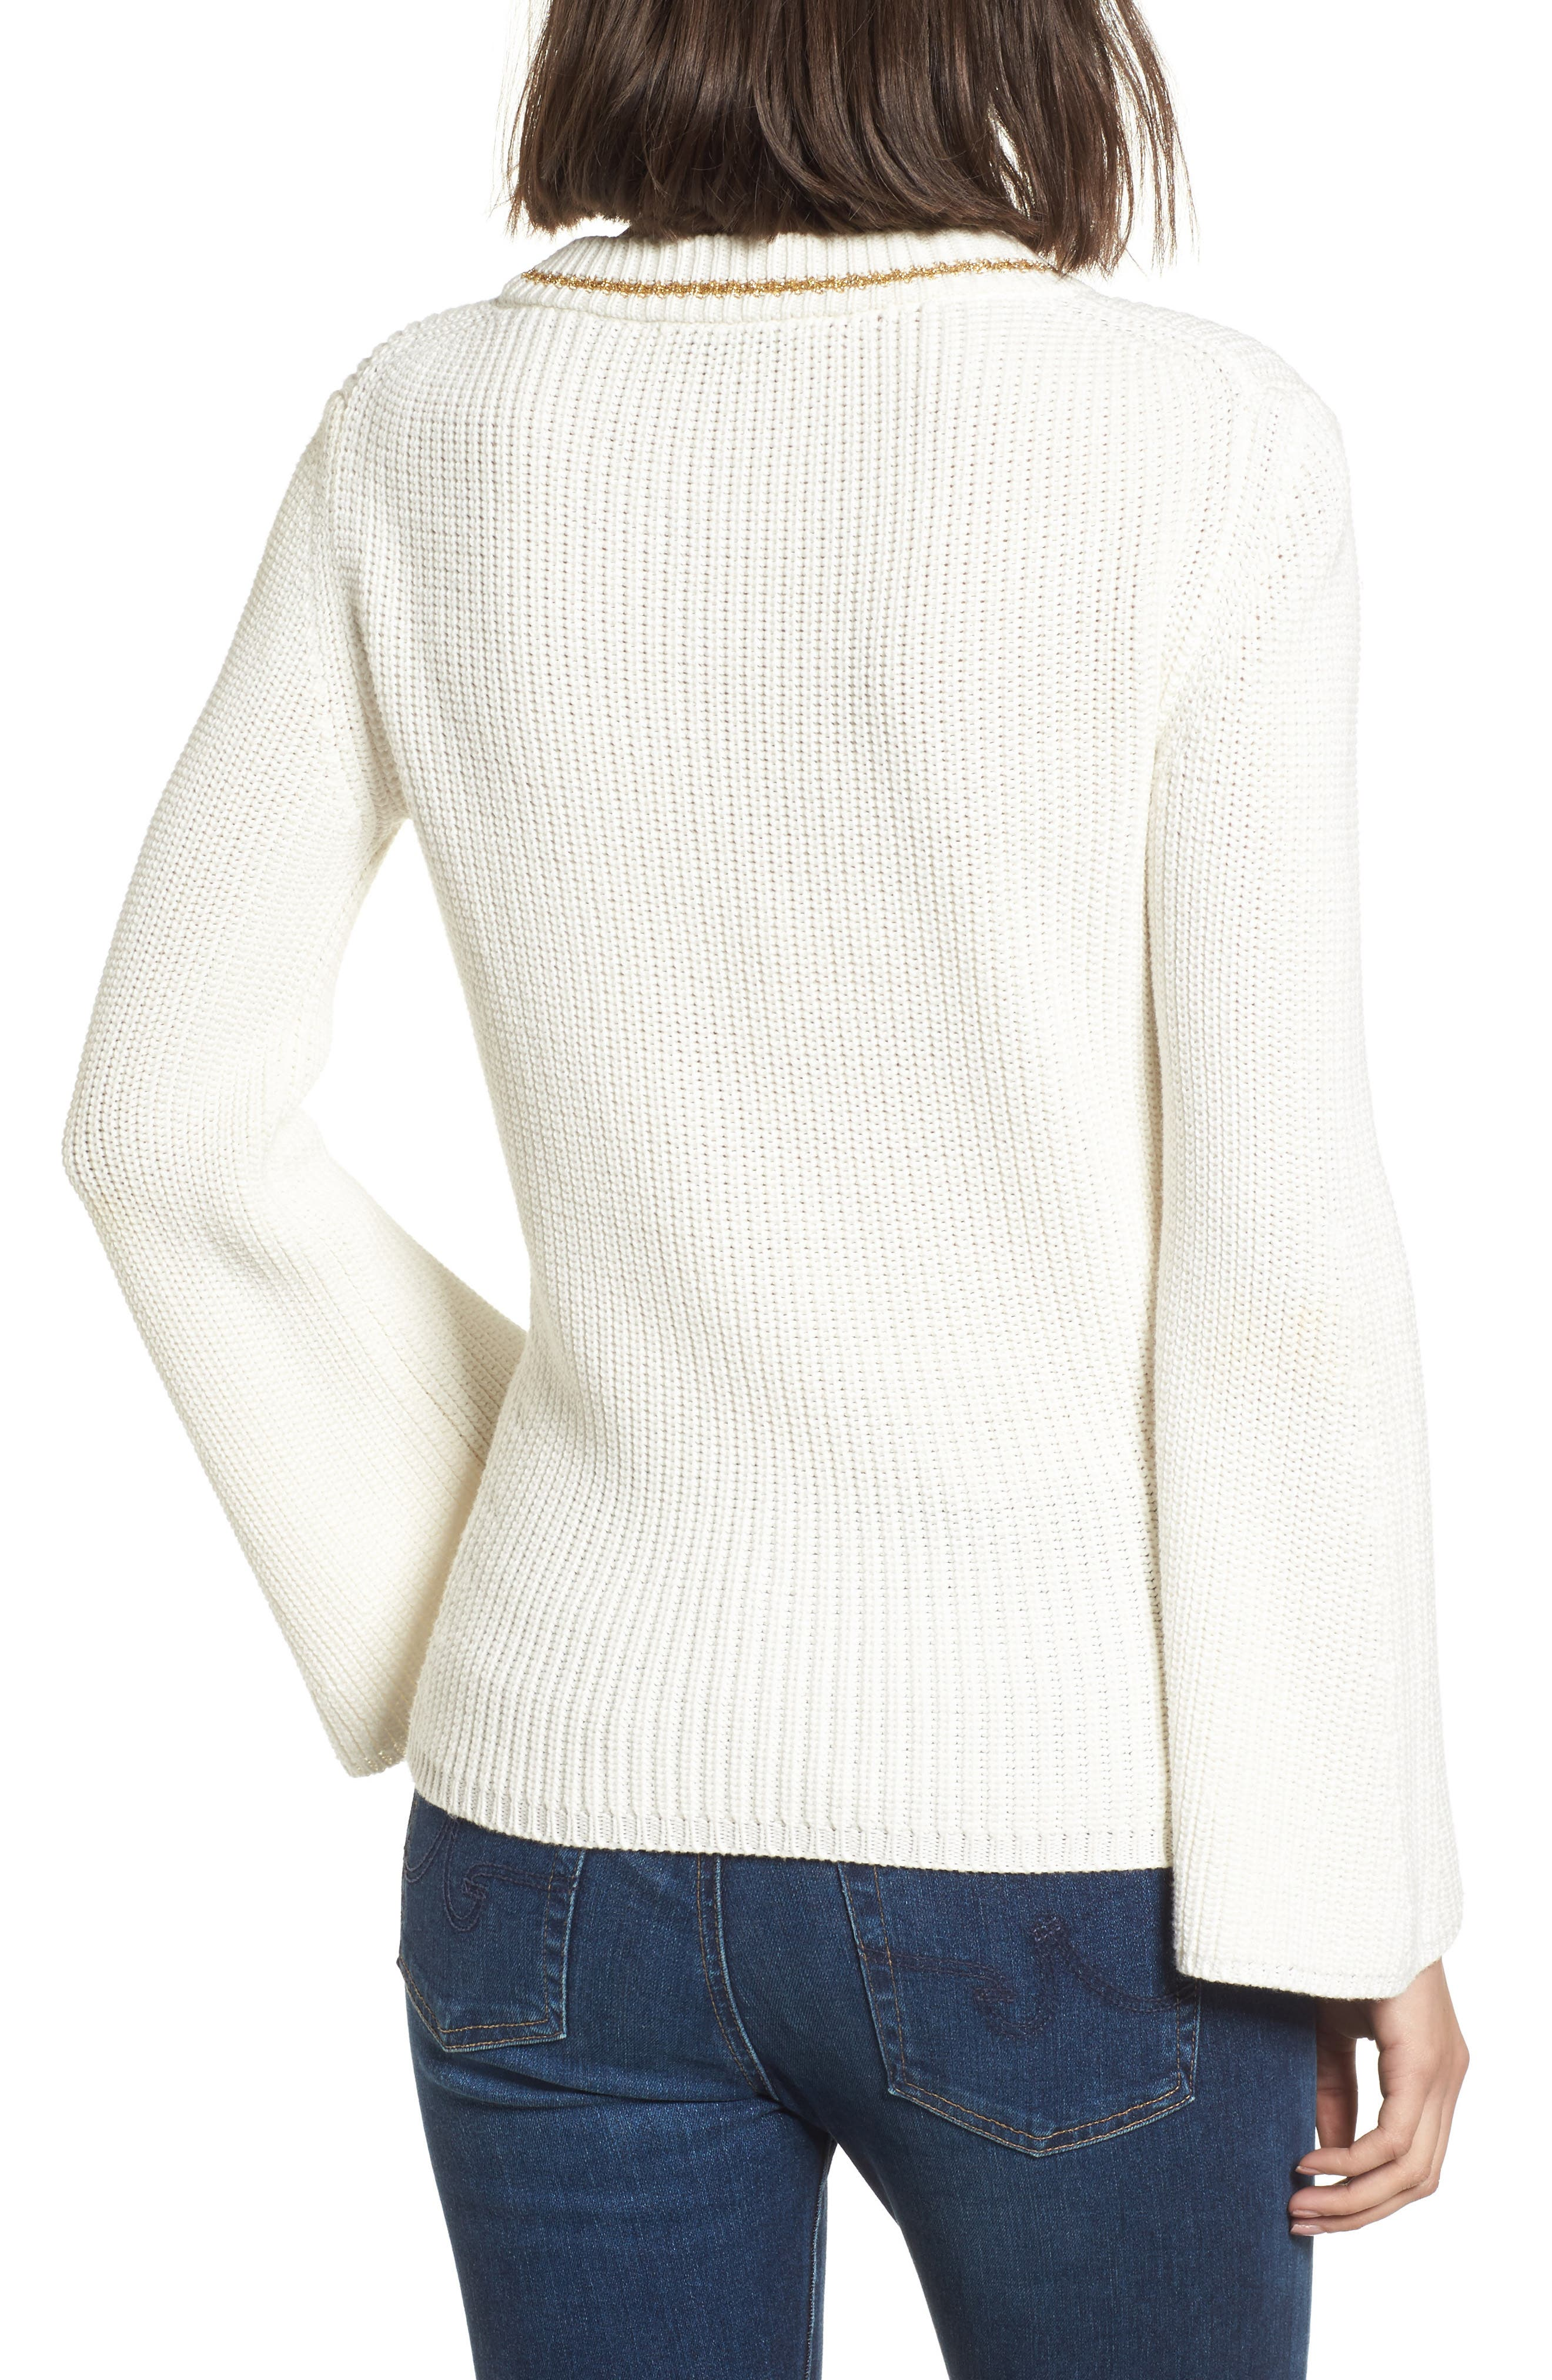 Coco Sweater,                             Alternate thumbnail 2, color,                             White